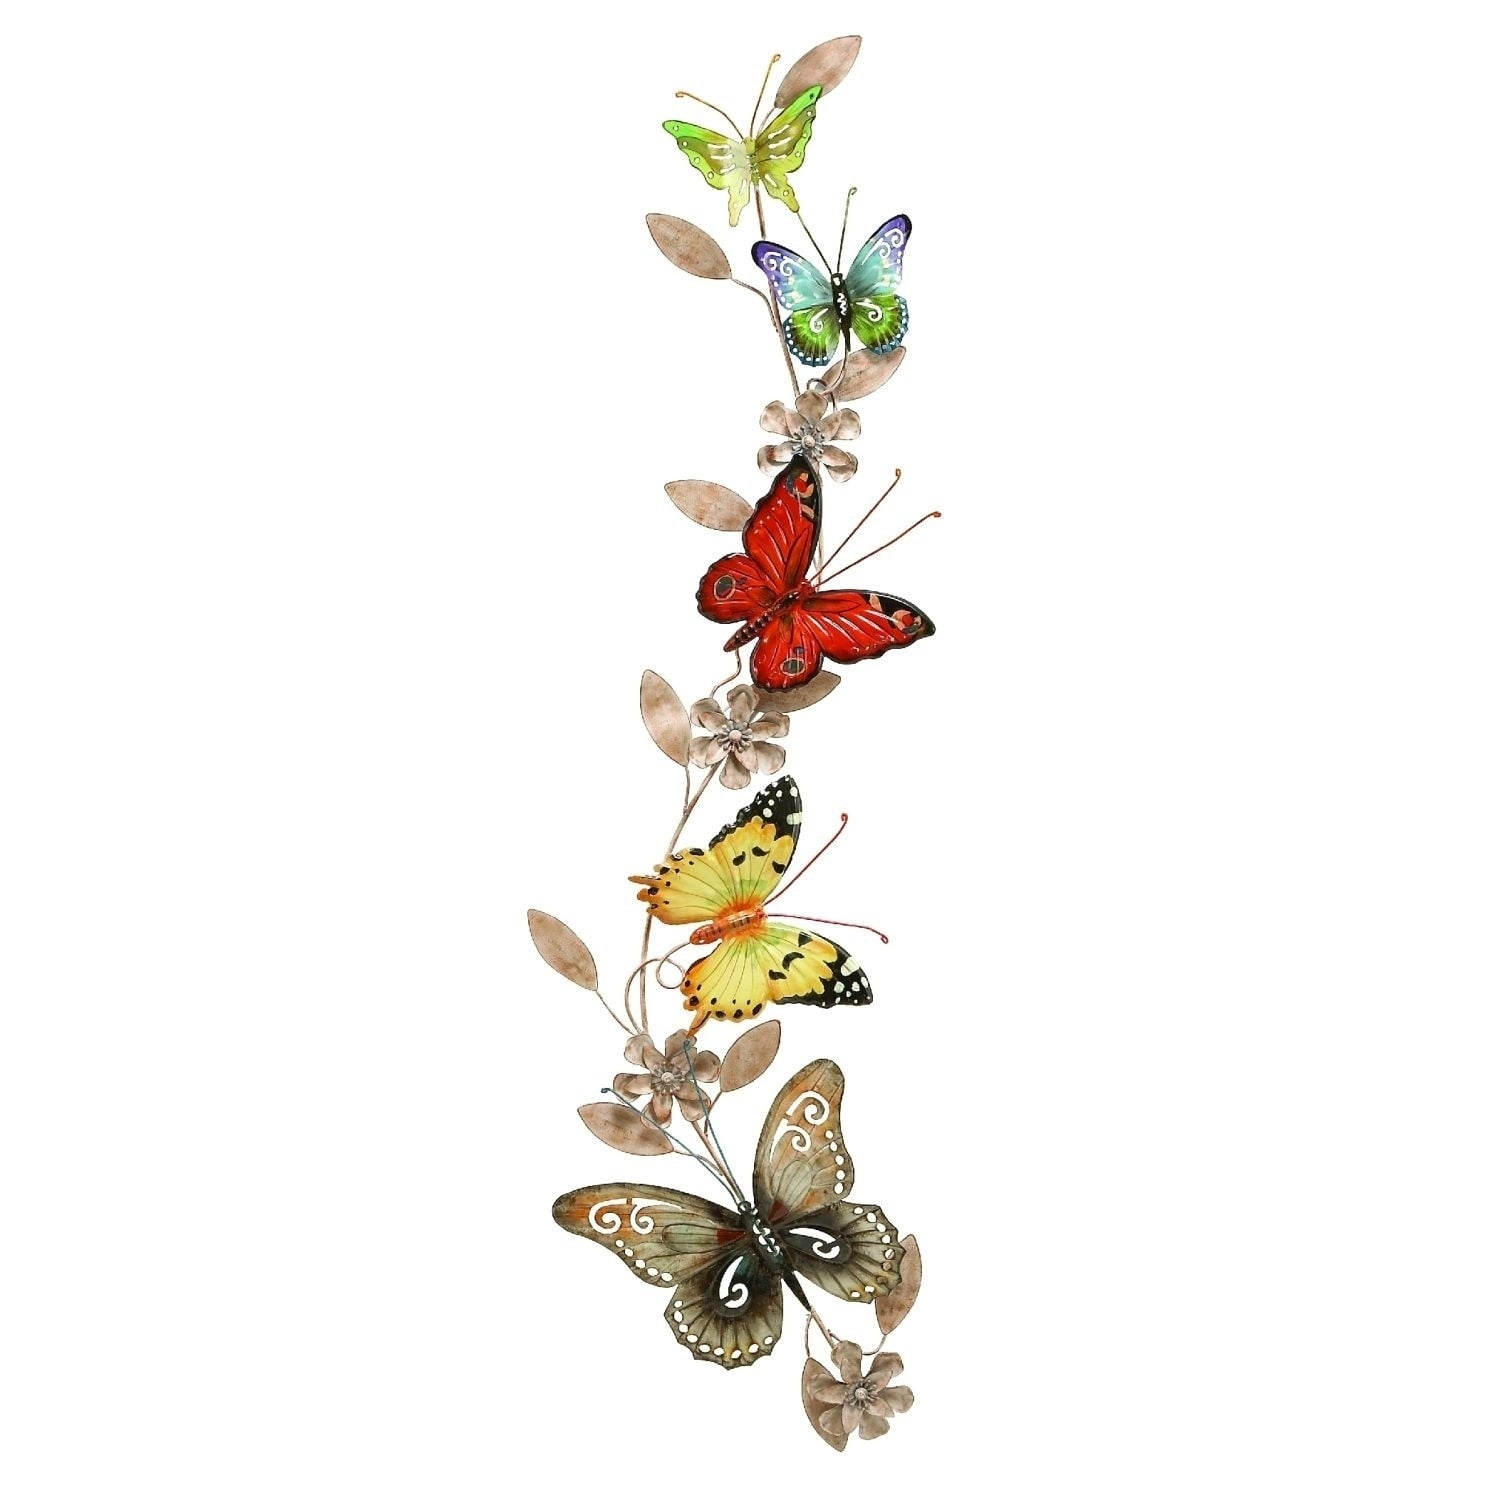 Studio 350 Metal Butterfly Decor 39 Inches High, 10 Inches Wide